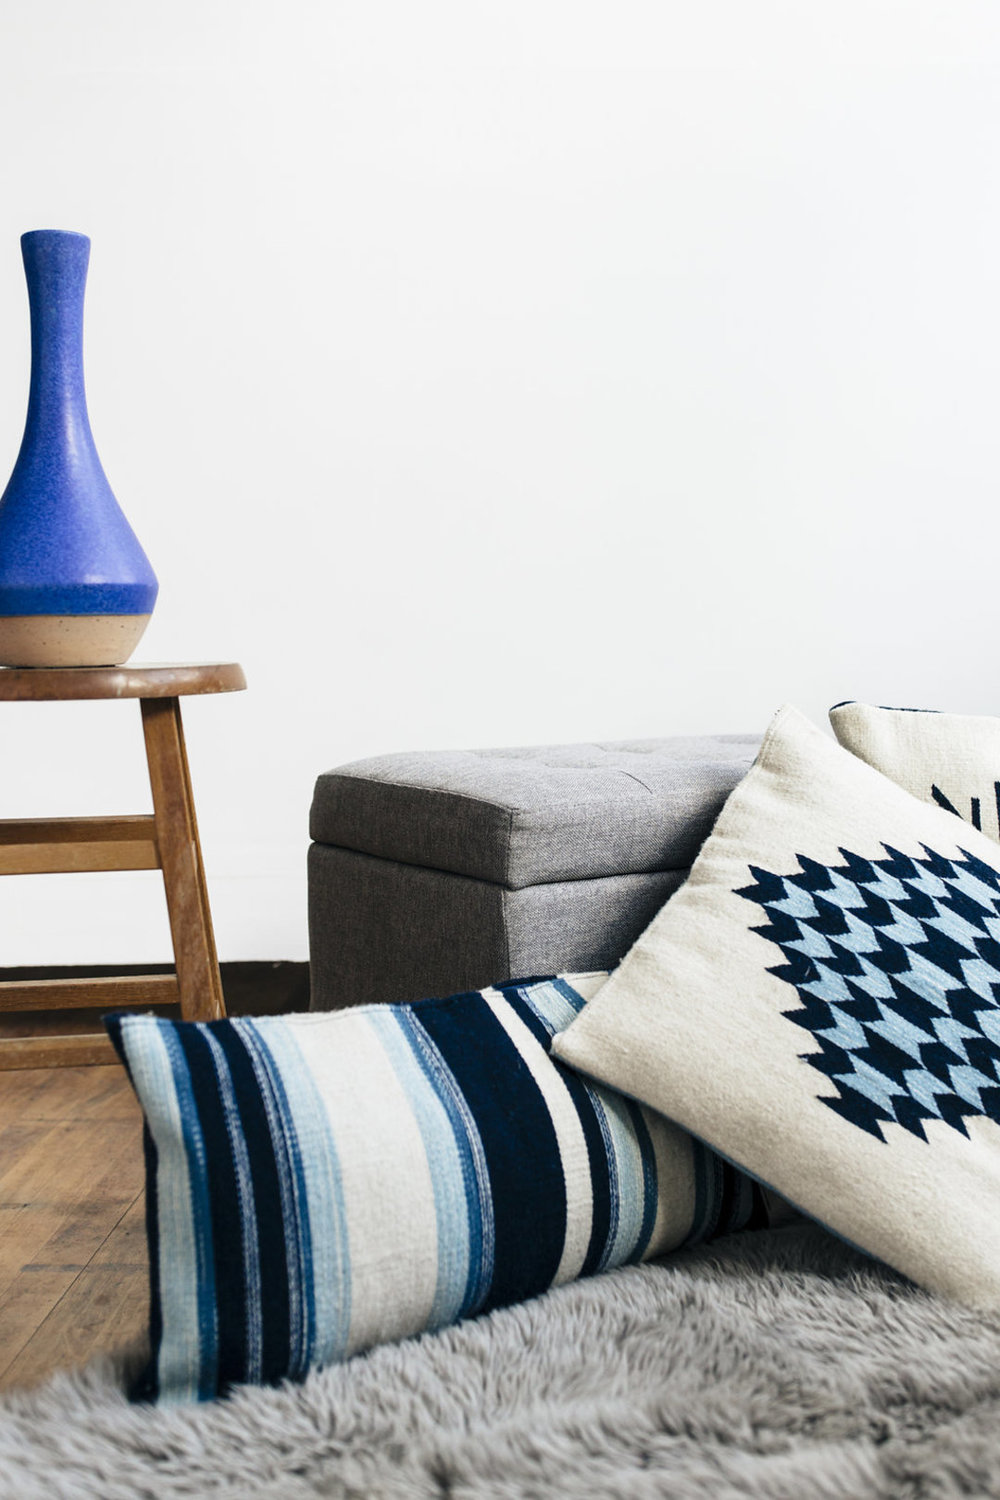 Brand Review - Ethical home goods and pillows by Manos Zapatecas